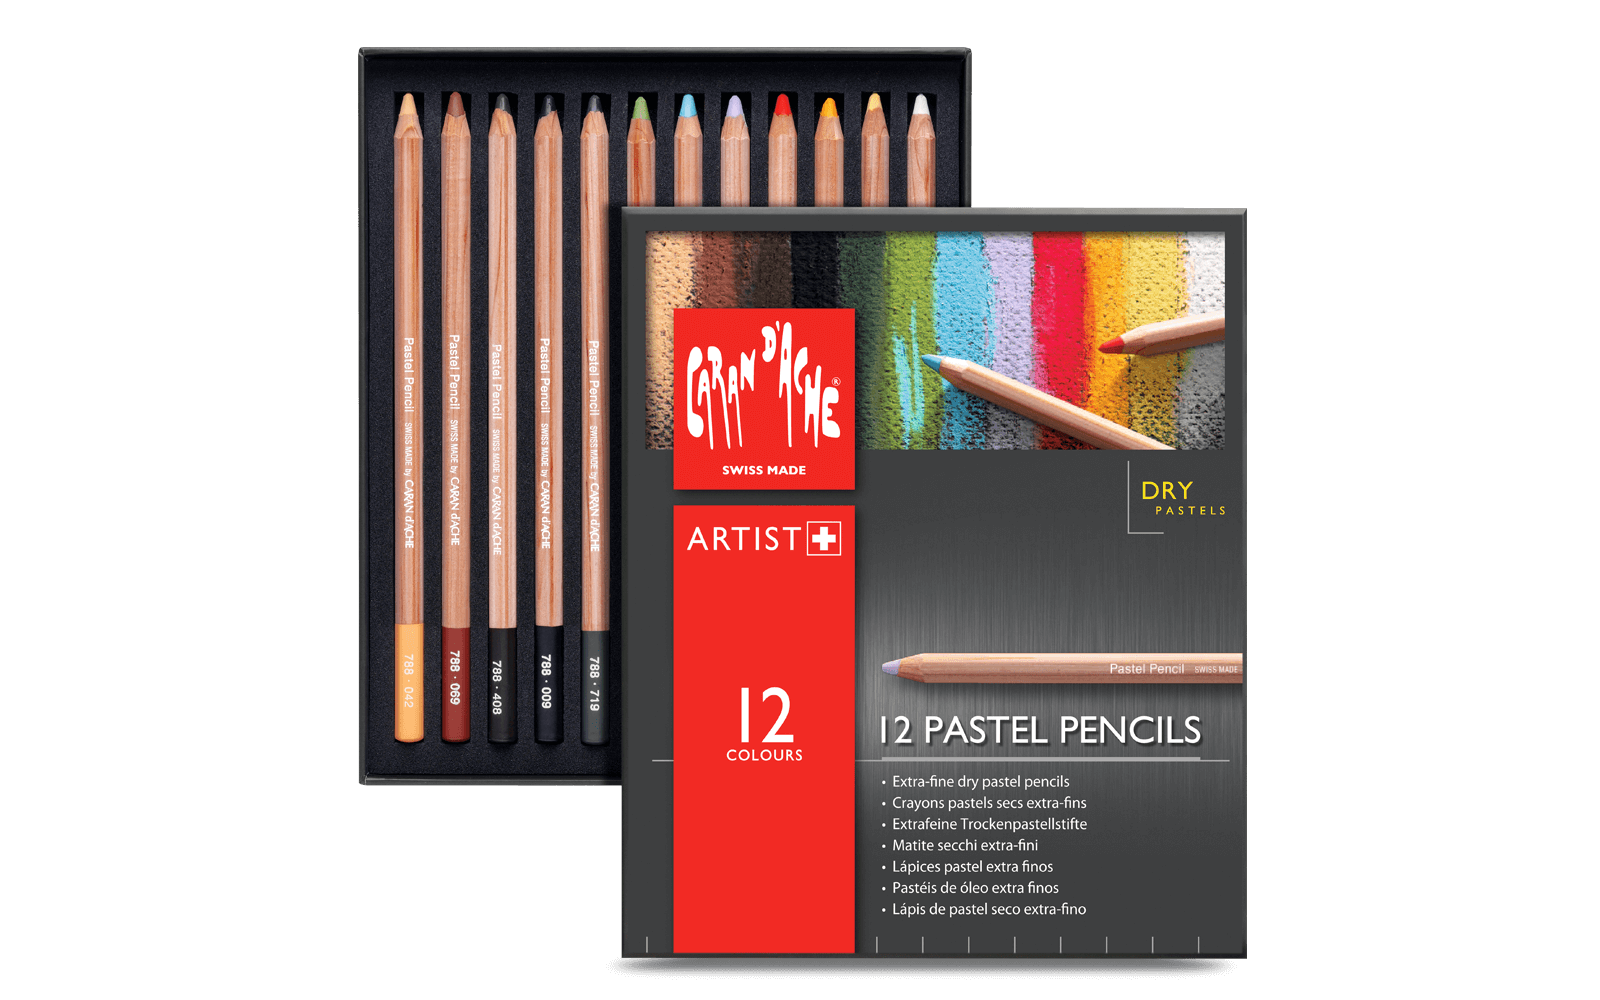 Atelier drawing pencil. Dry pastel pencils assortment